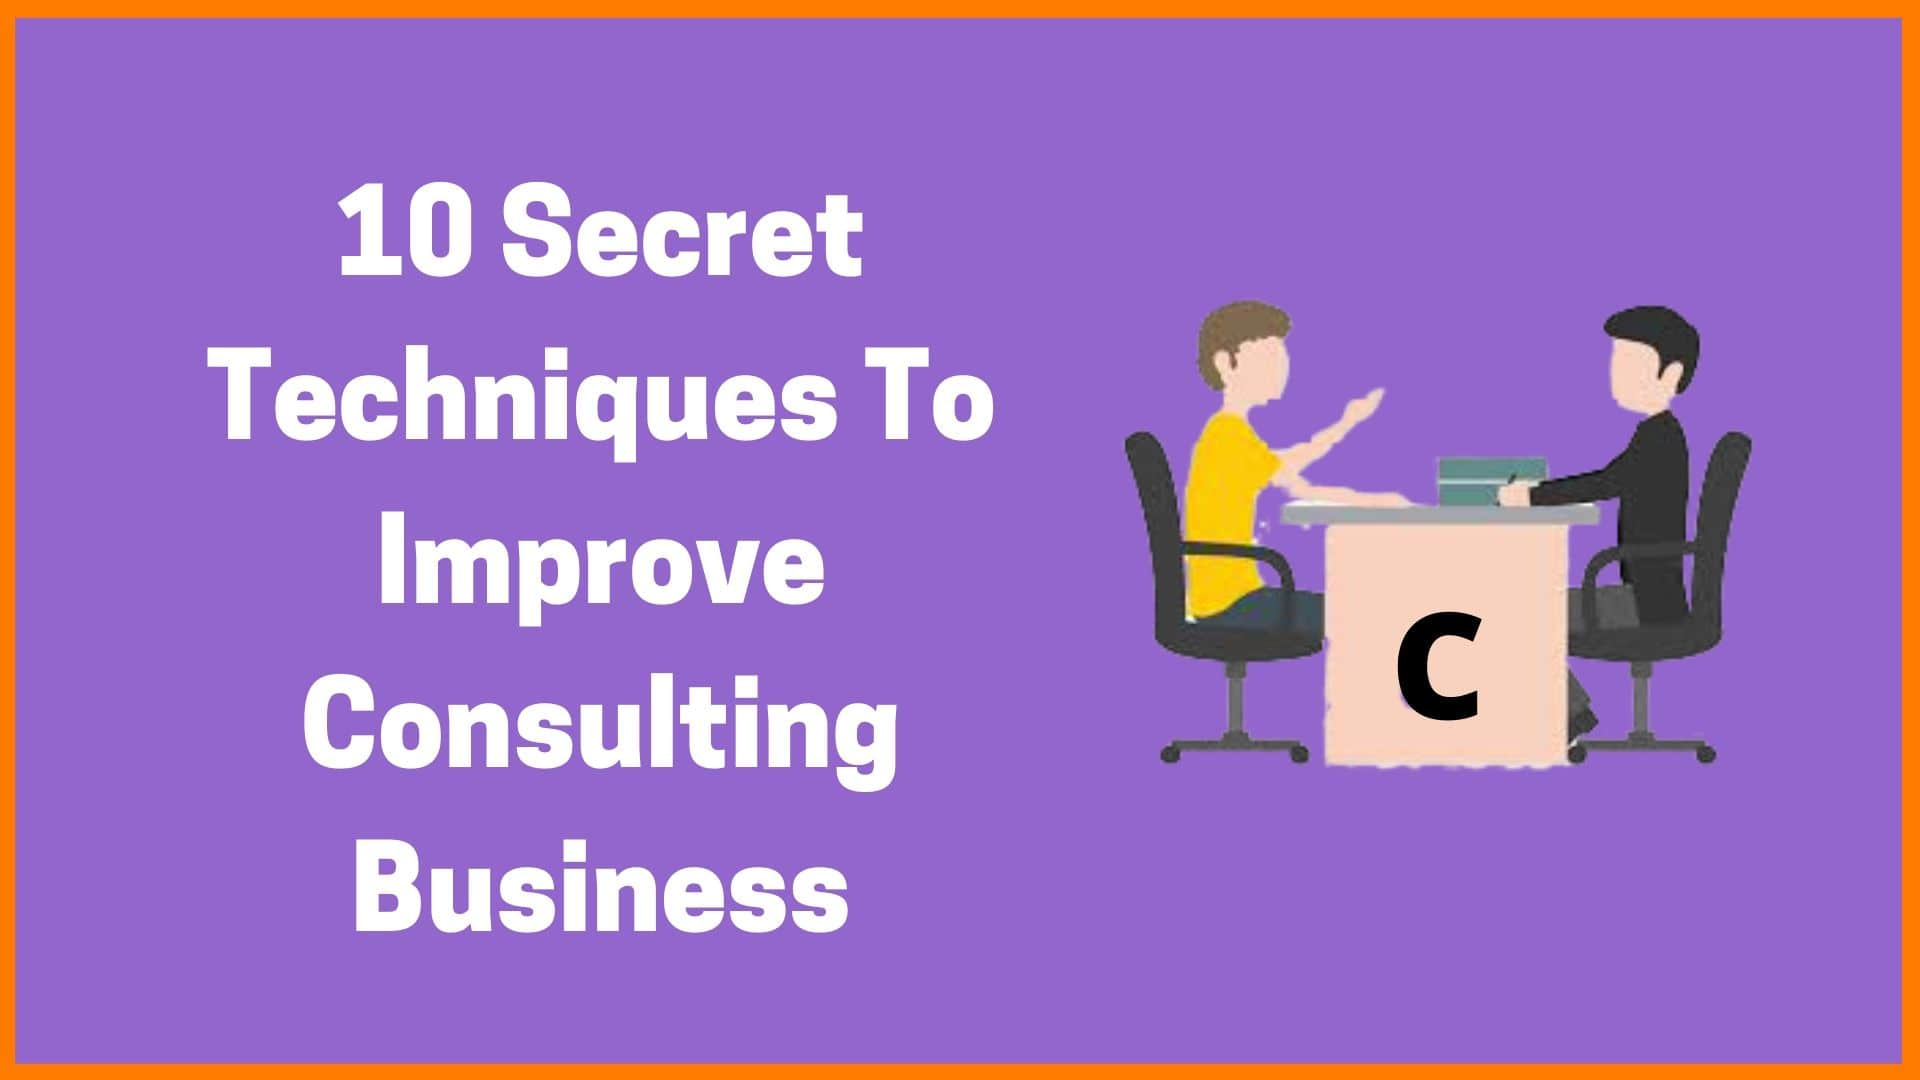 10 Skills To Master As A Consultant [2020 List]